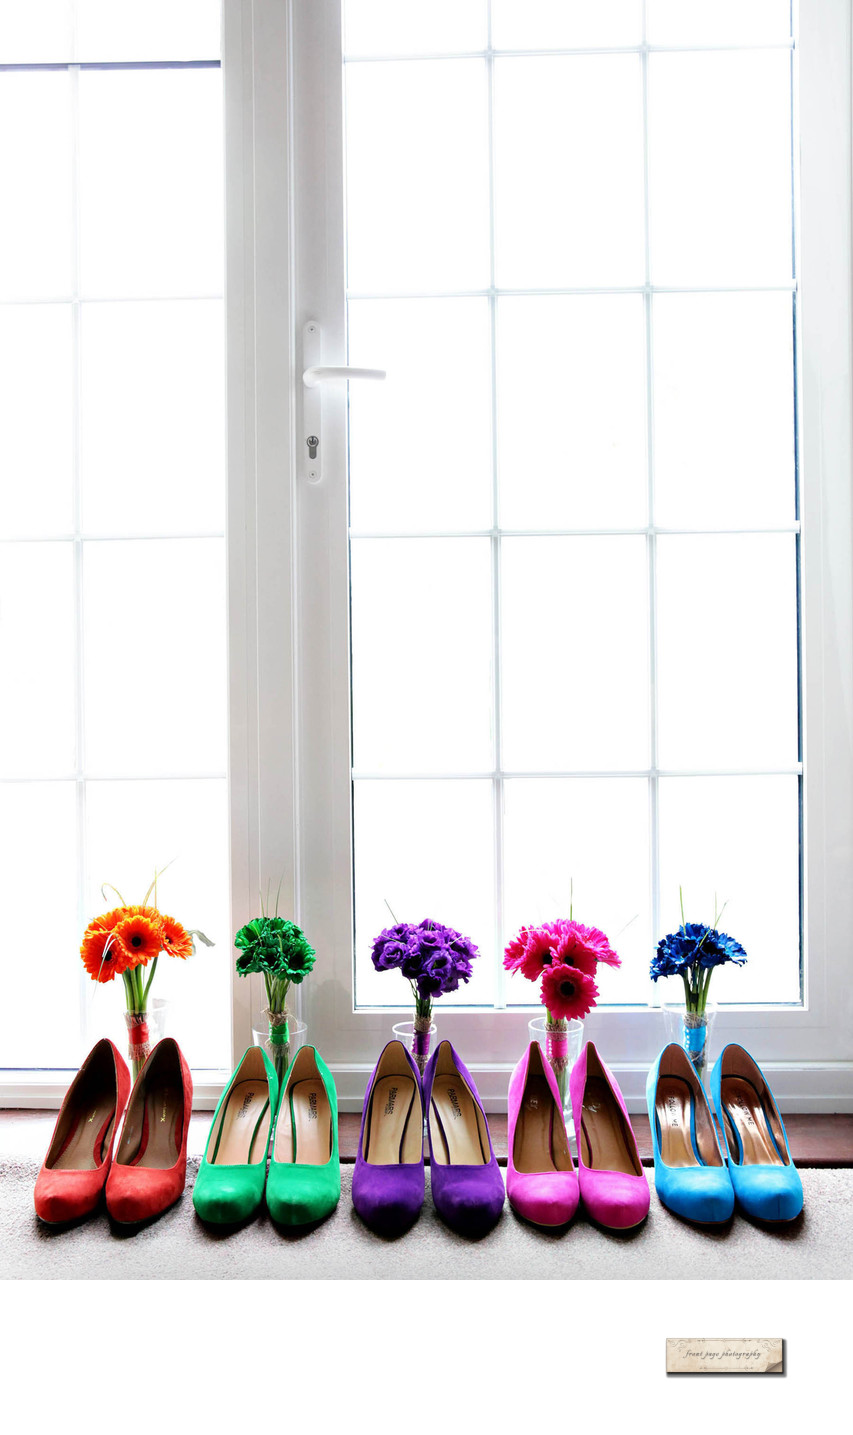 Bridesmaid's shoes and flowers on wedding day